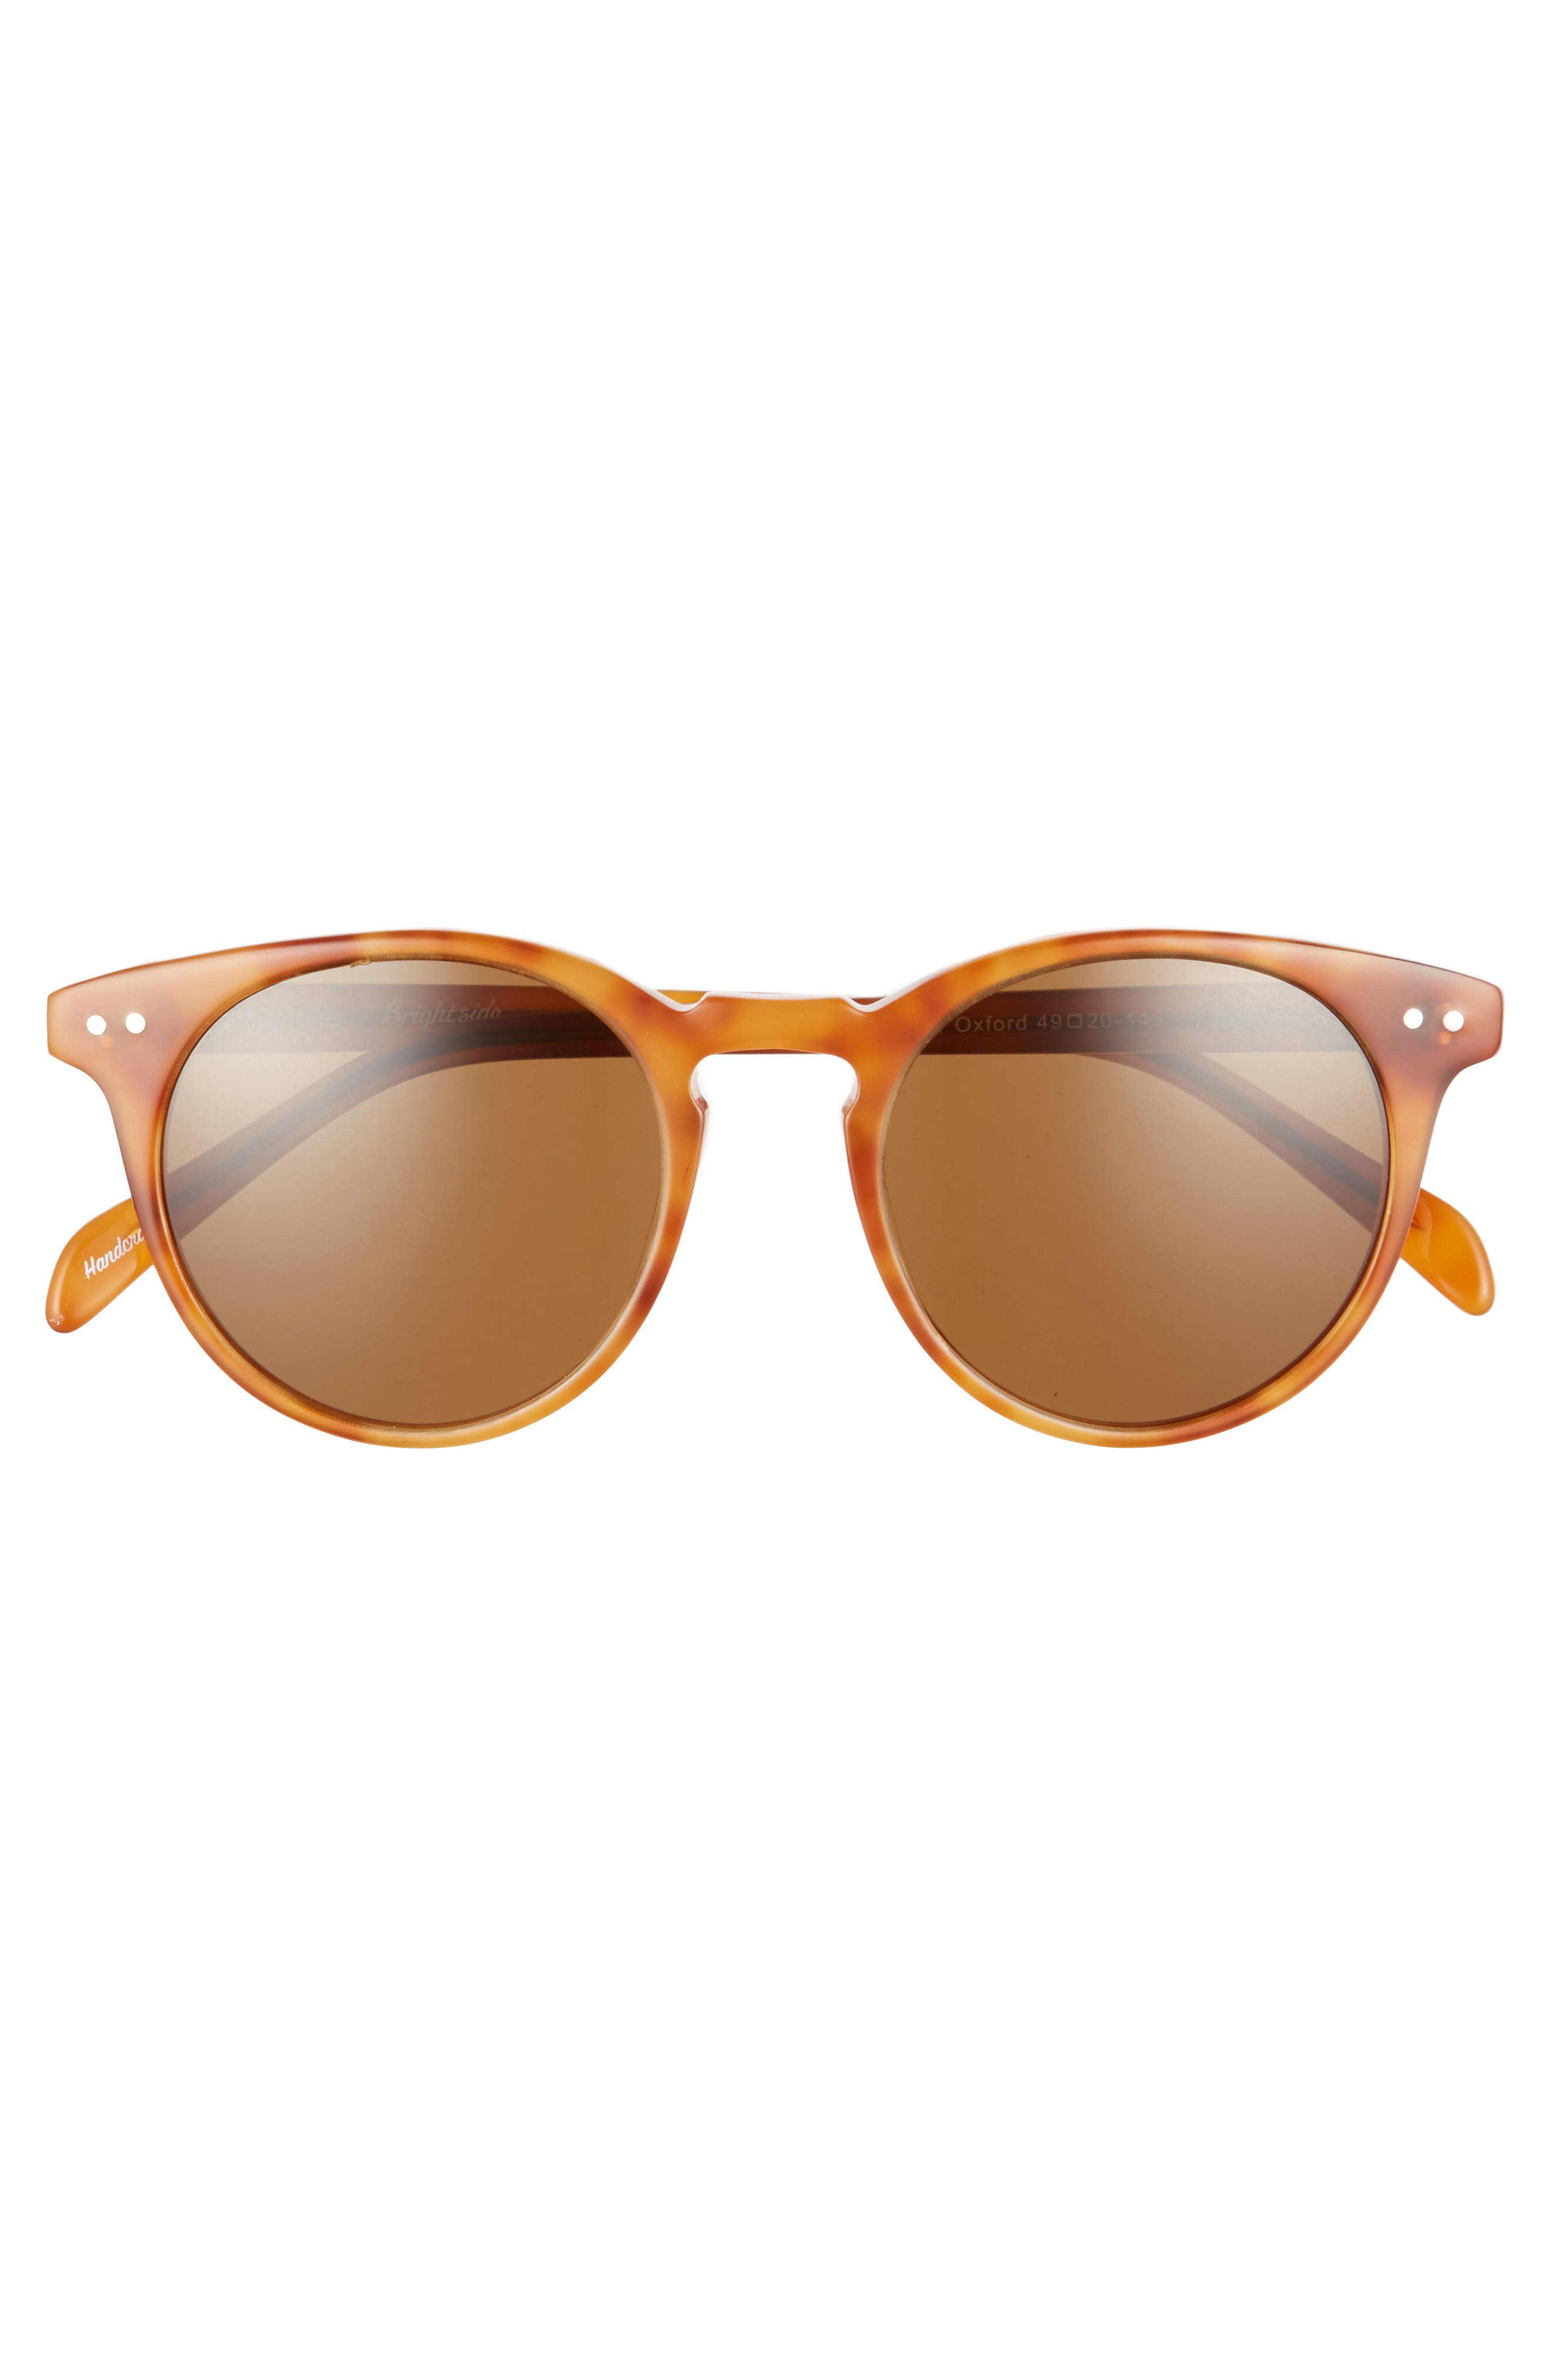 Oxford 49mm Sunglasses,                             Alternate thumbnail 3, color,                             Light Brown/ Brown